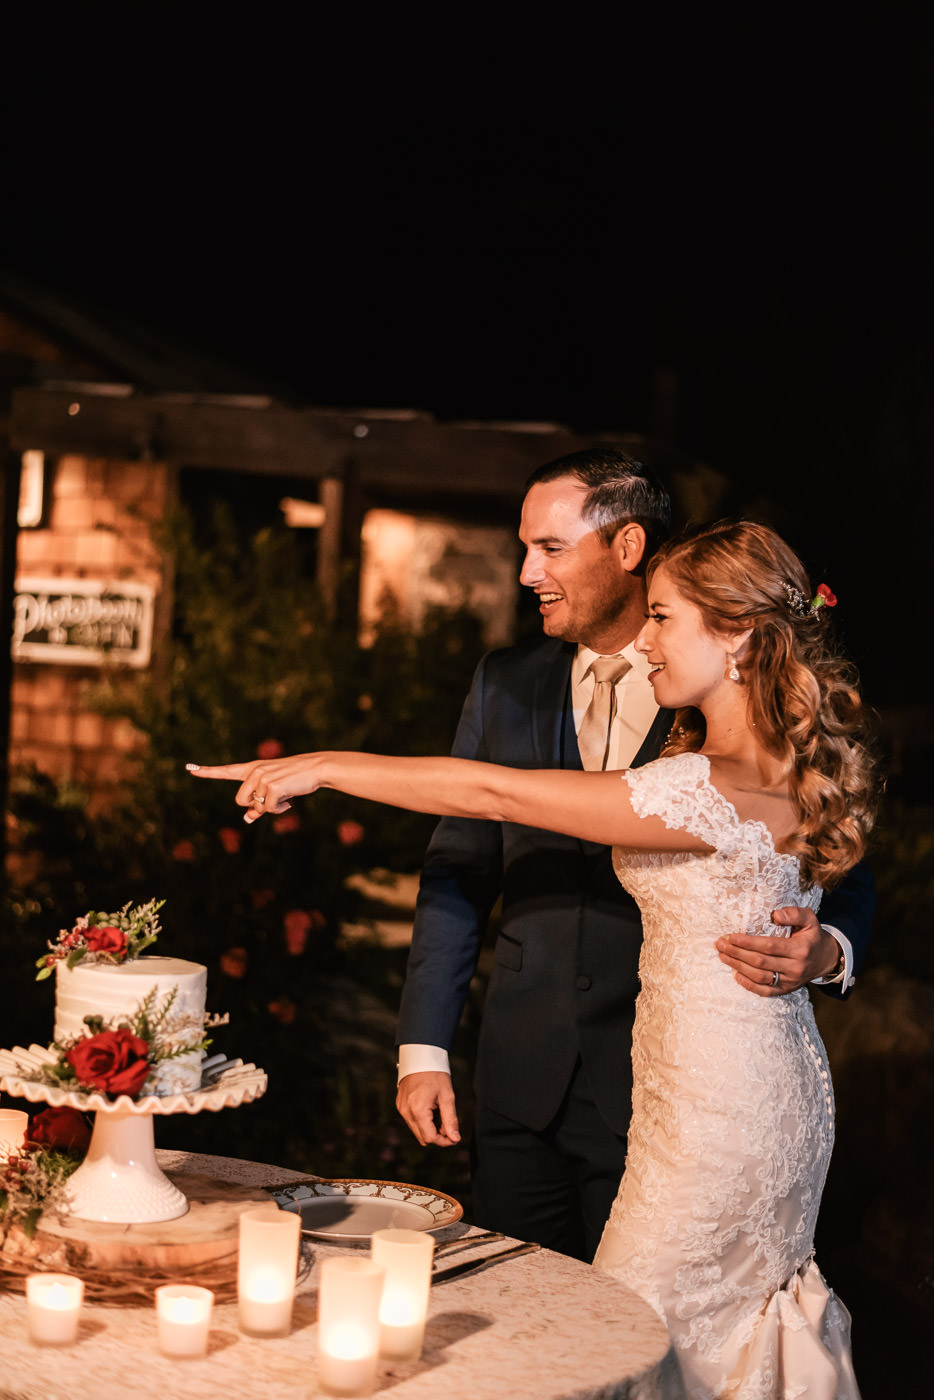 Bride points at one of her guests before cutting the wedding cake.